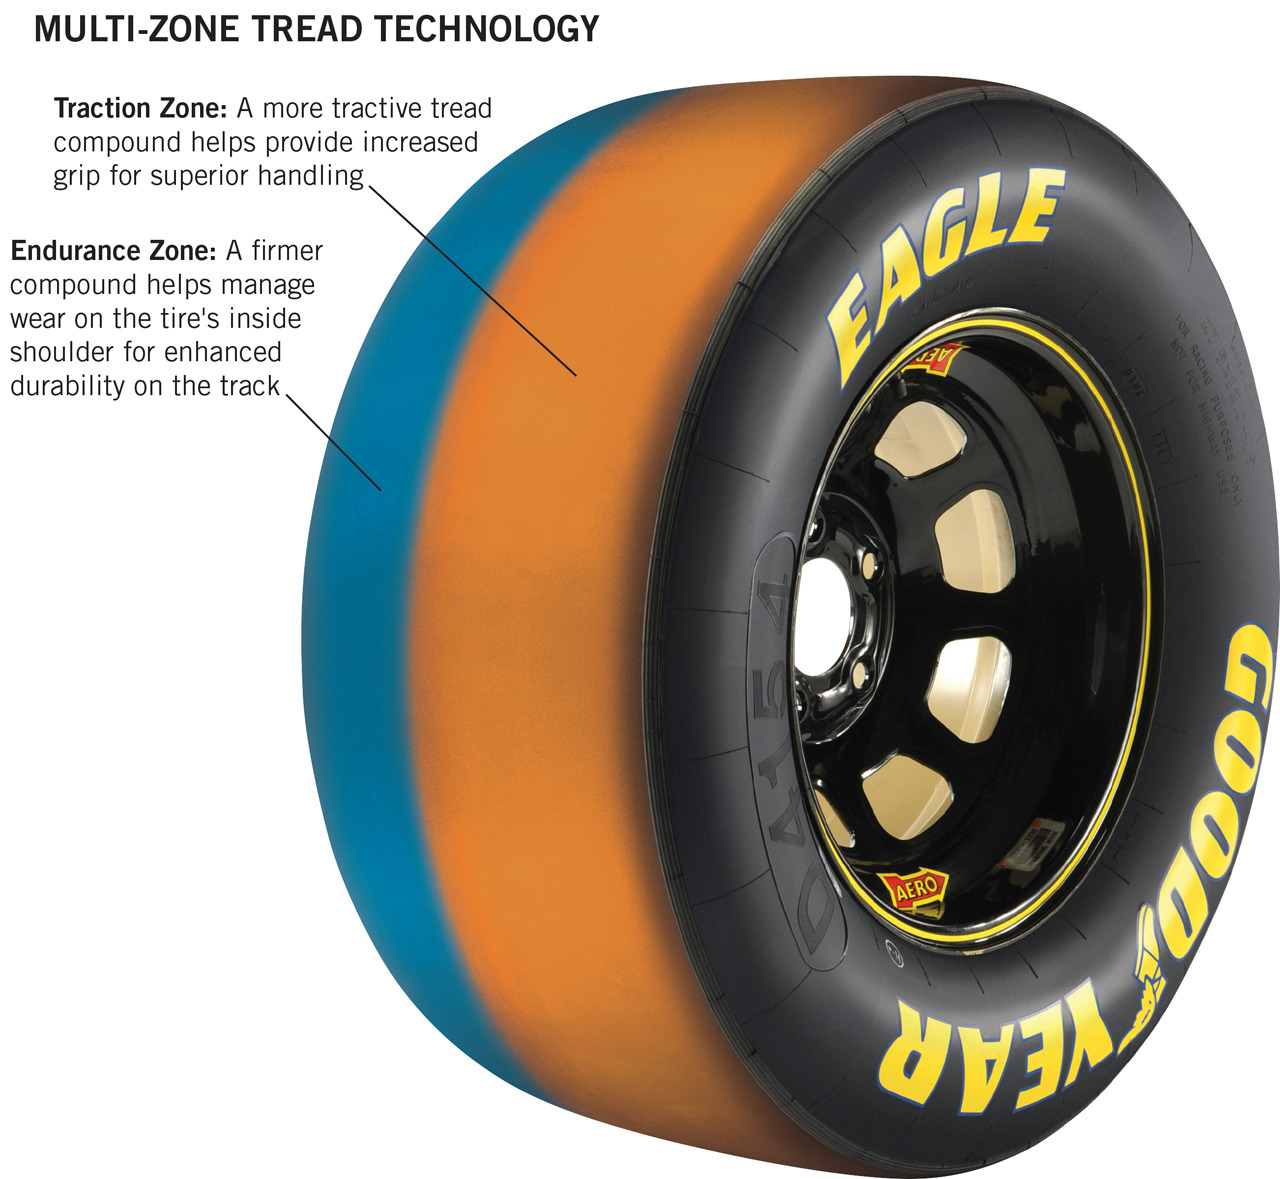 Goodyear Eagle Multi-Zone Racing Tire For NASCAR Photo